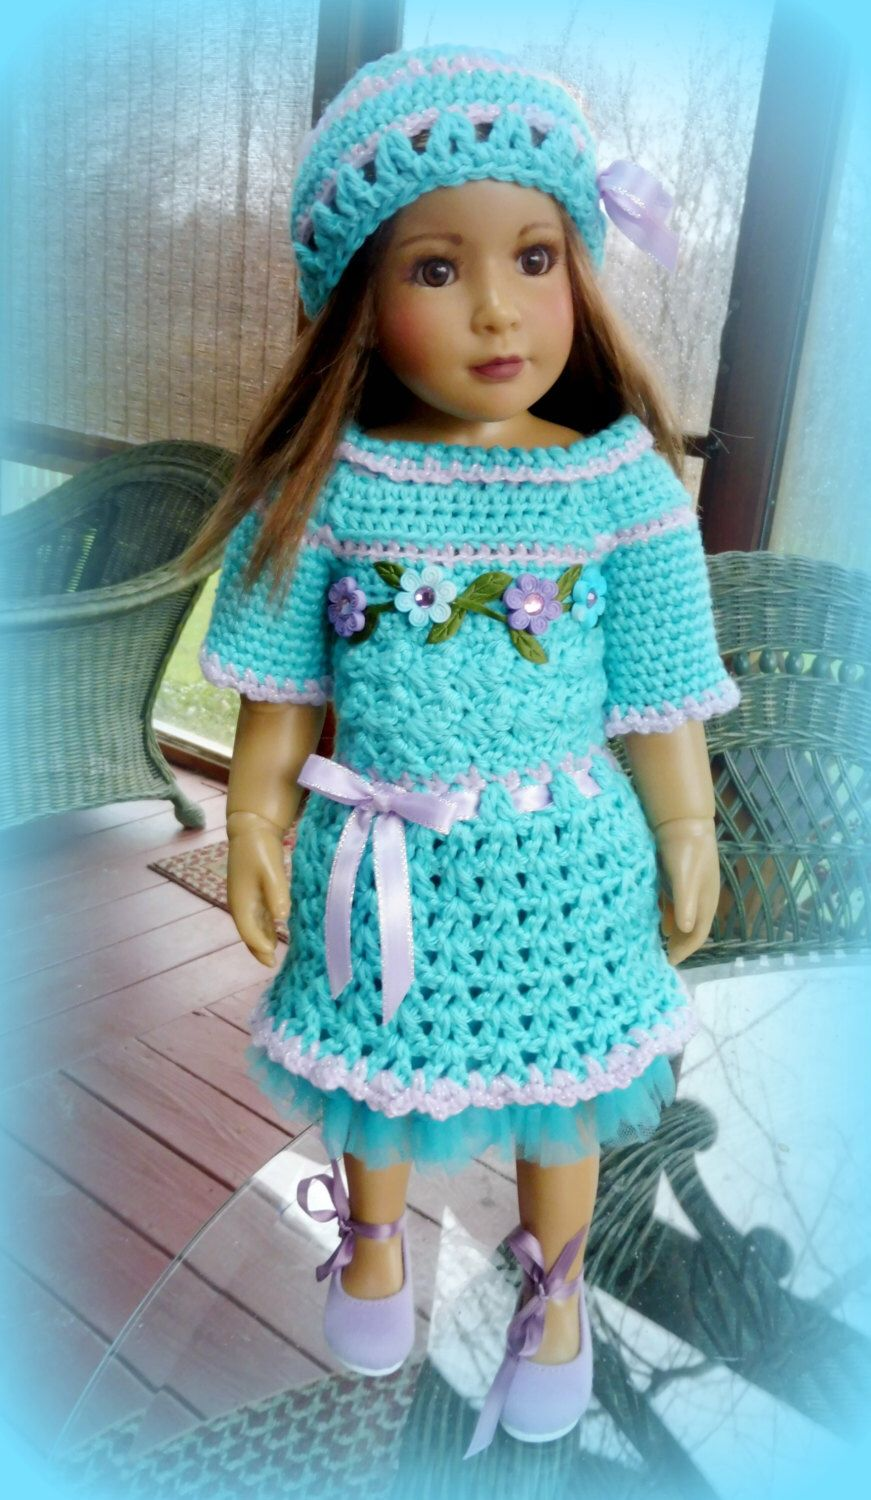 Crocheted Turquoise/Lavender Dress for Kidz 'n' Cats Dolls by CloudNineAdornments on Etsy https://www.etsy.com/listing/266005145/crocheted-turquoiselavender-dress-for